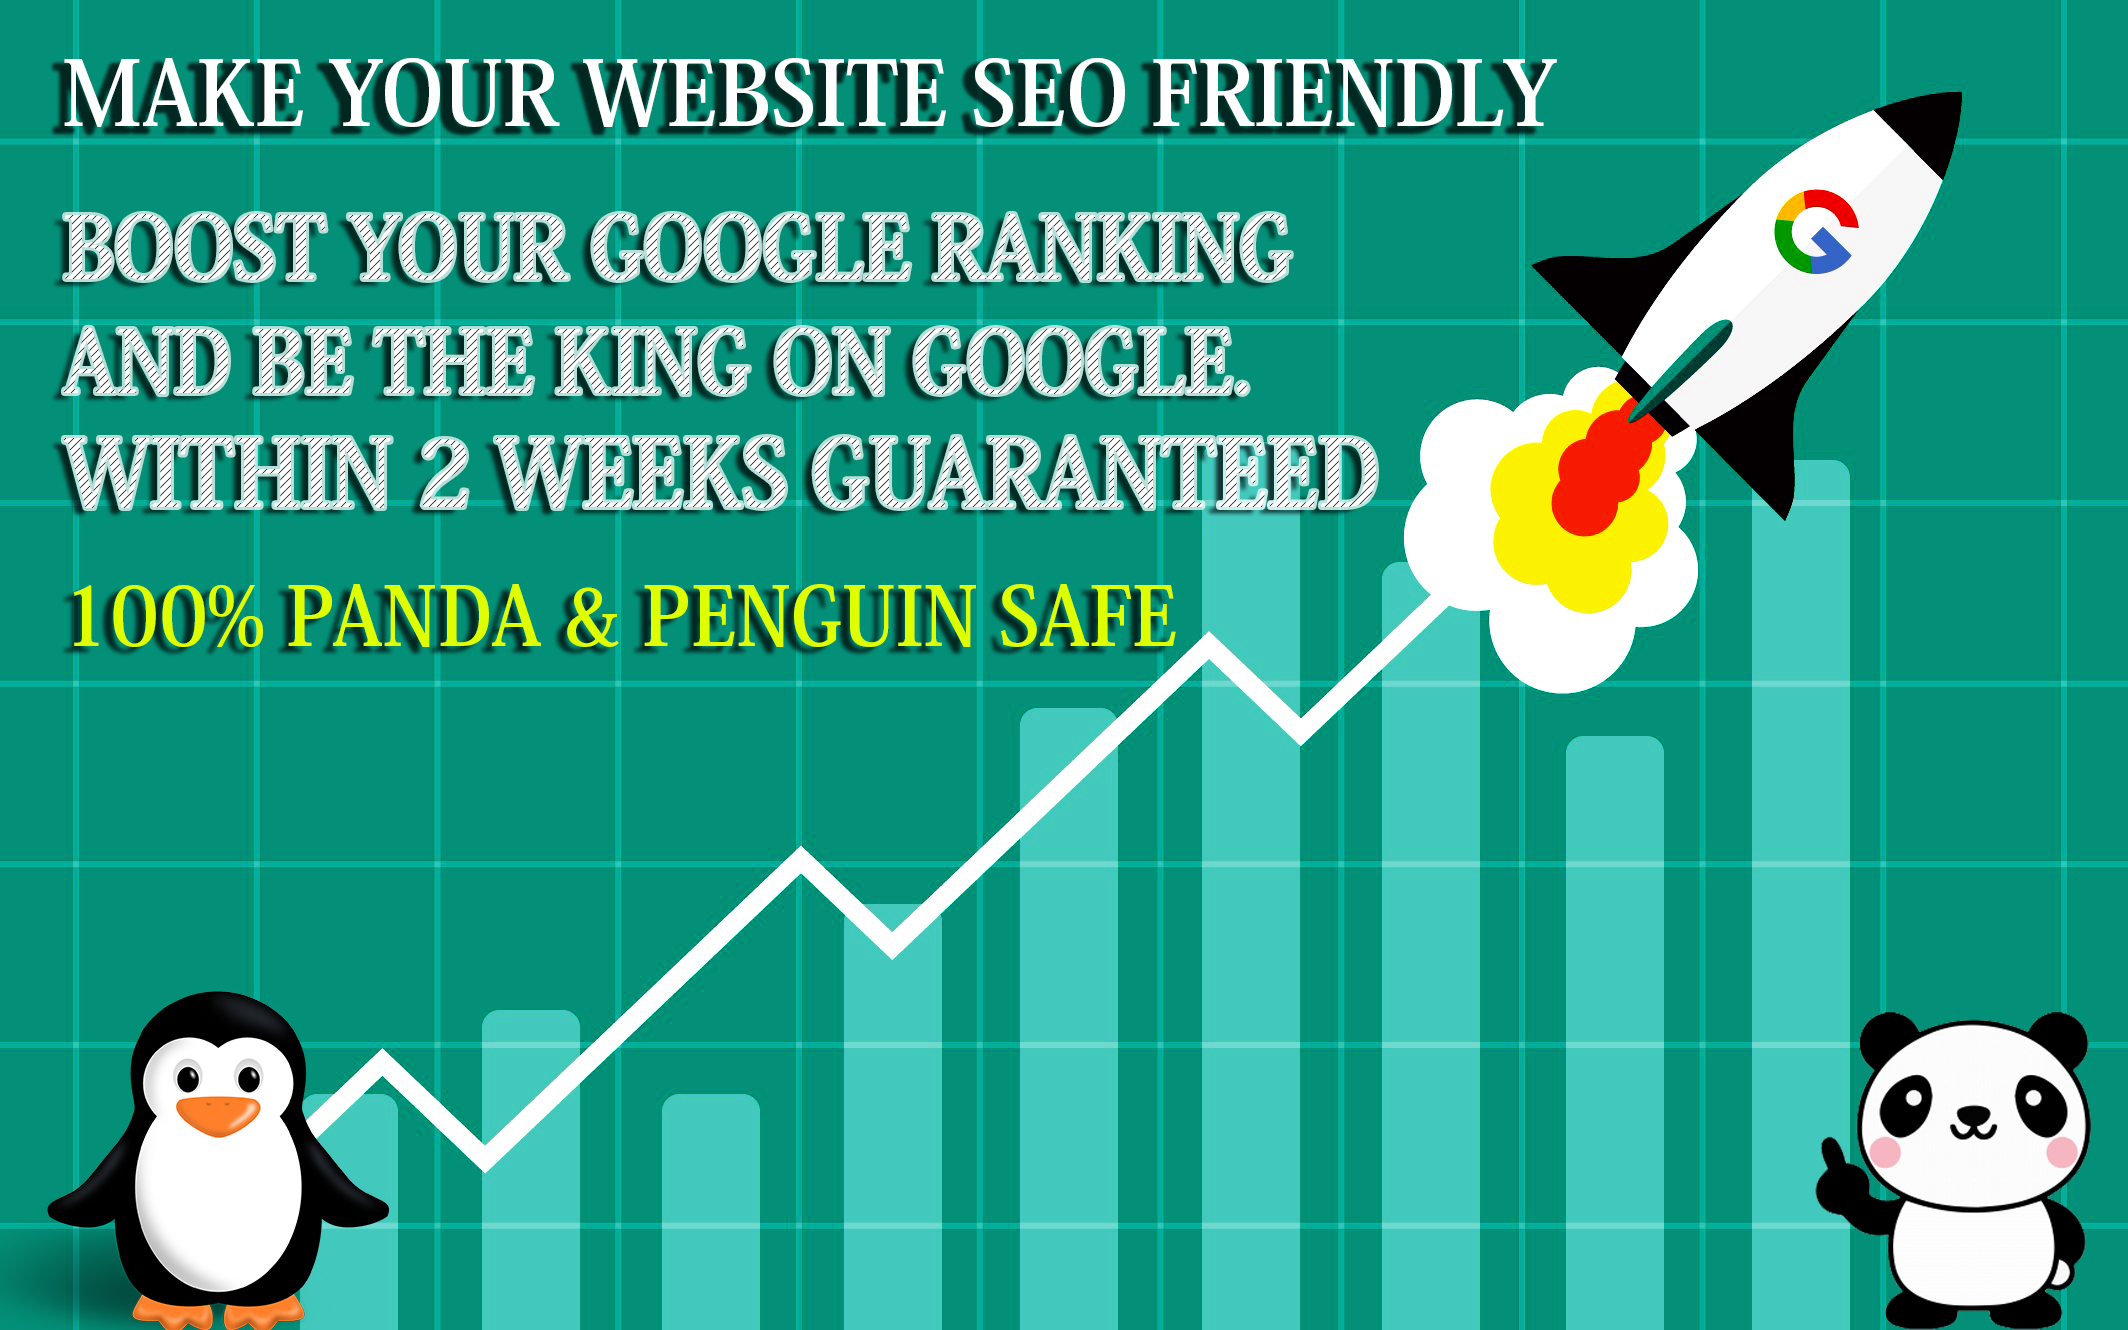 MAKE YOUR WEBSITE NO-1 ON GOOGLE 1st PAGE WITHIN 2WEEKS GUARANTEED